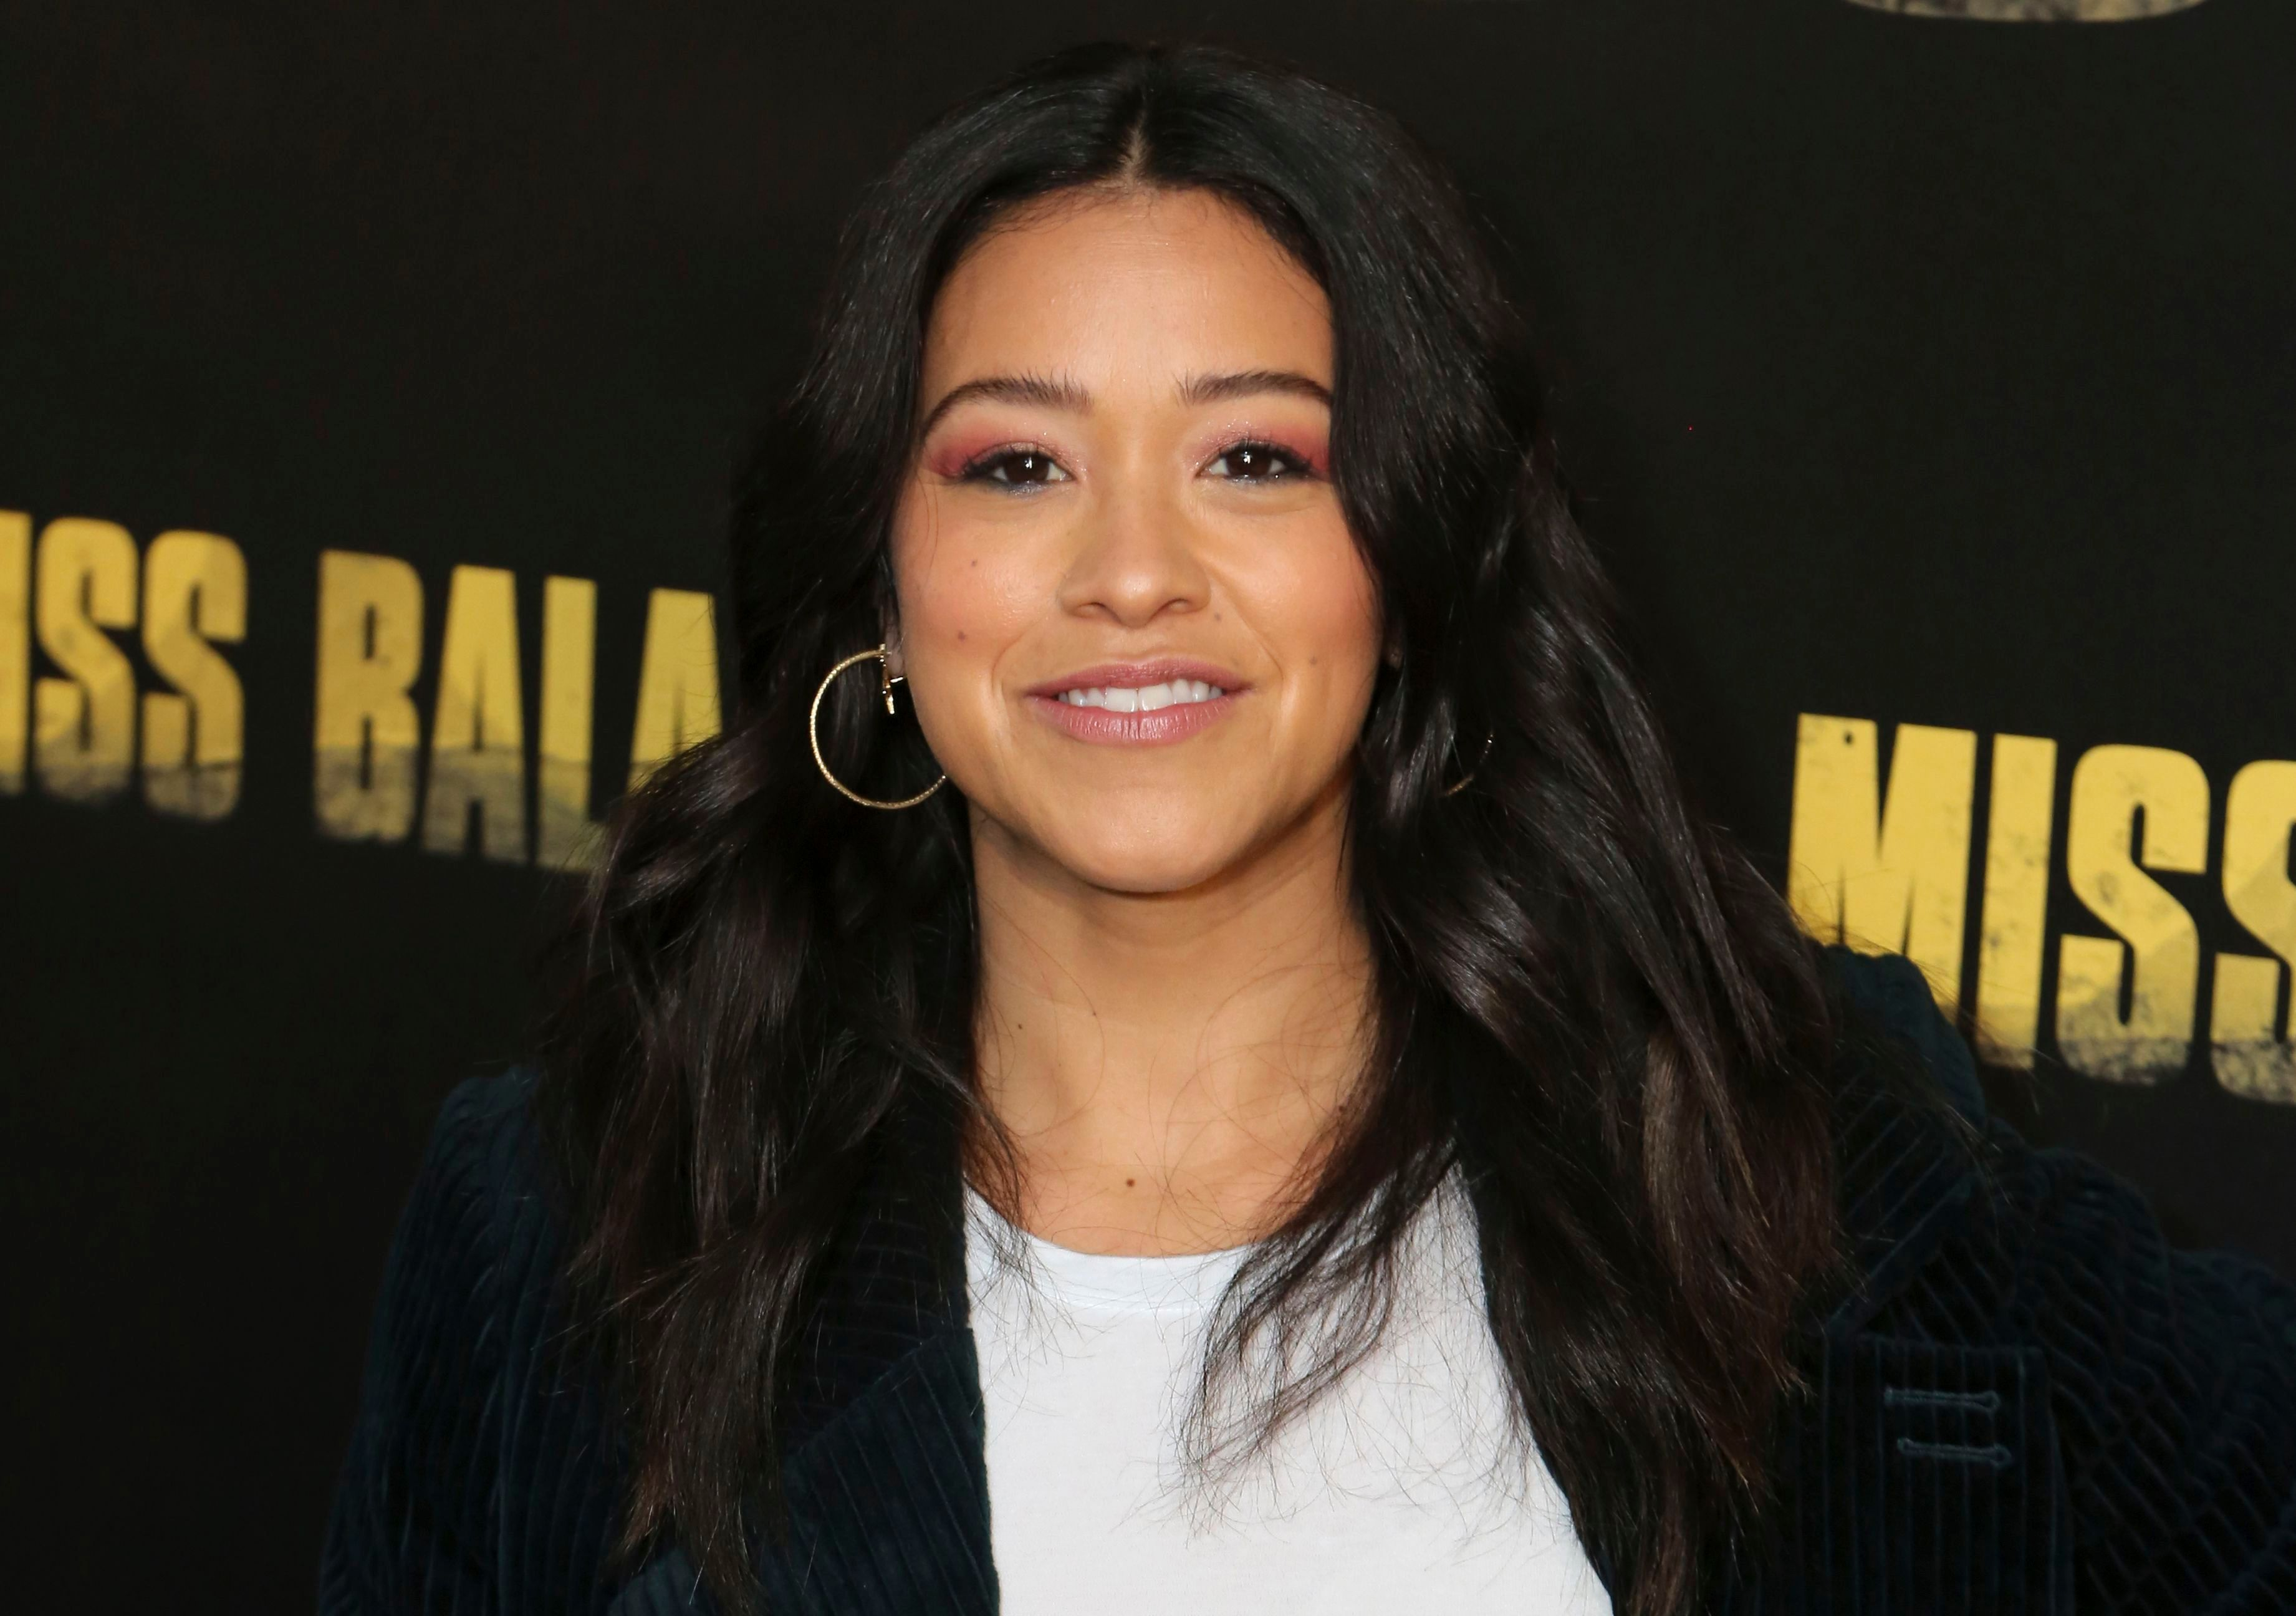 Gina Rodriguez Breaks Down While Defending Herself Against Anti-Black Accusations